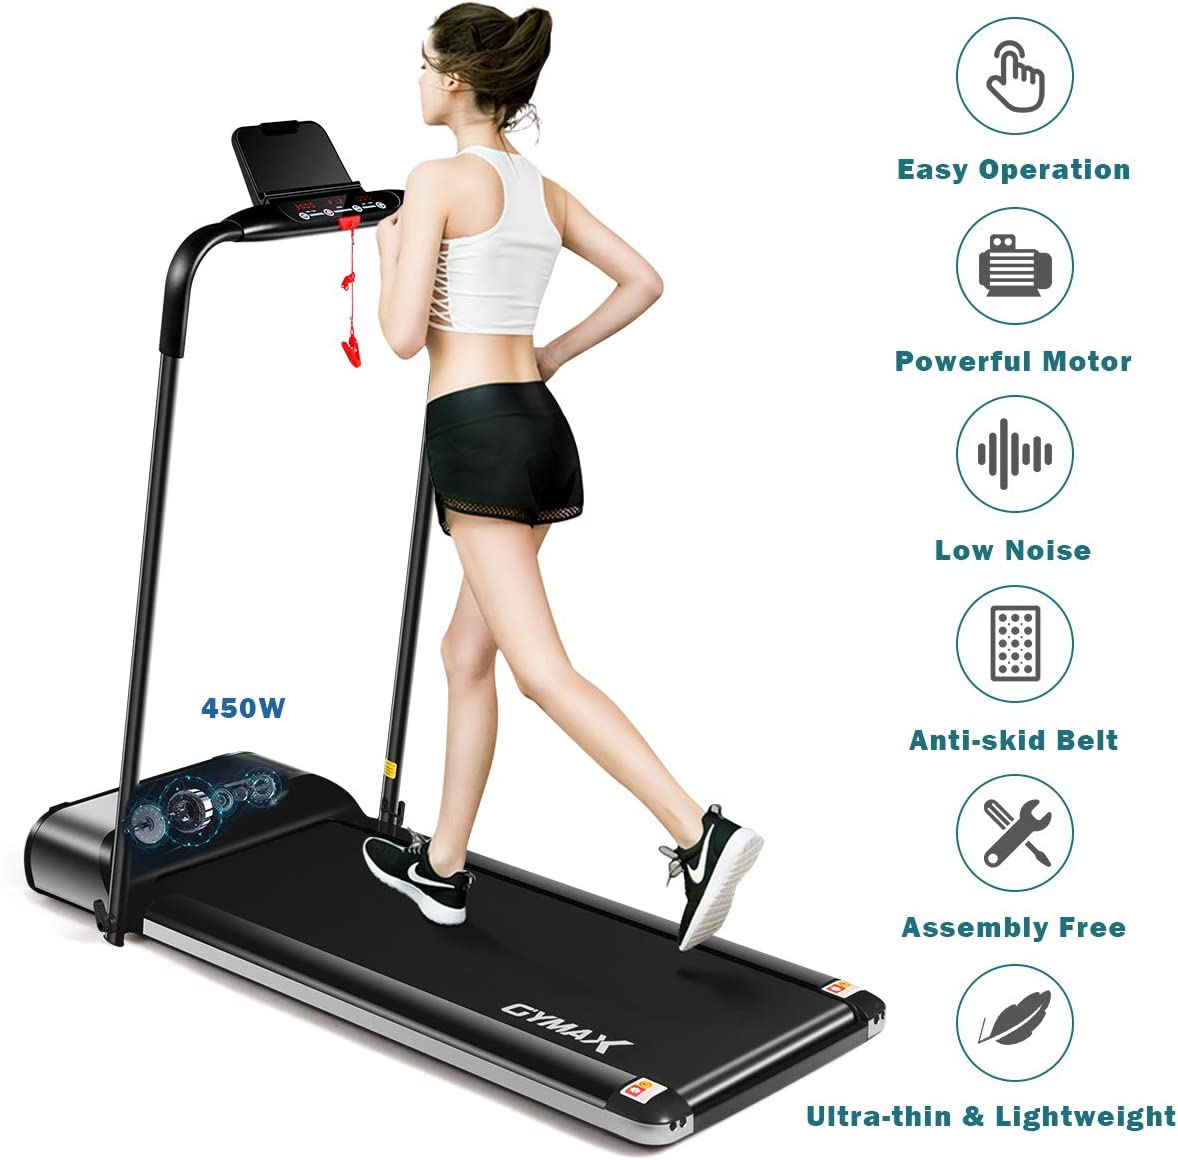 Ultra-Thin 450W Exercise Running Machine Compact Fitness Running /& Walking GYMAX Electric Folding Treadmill